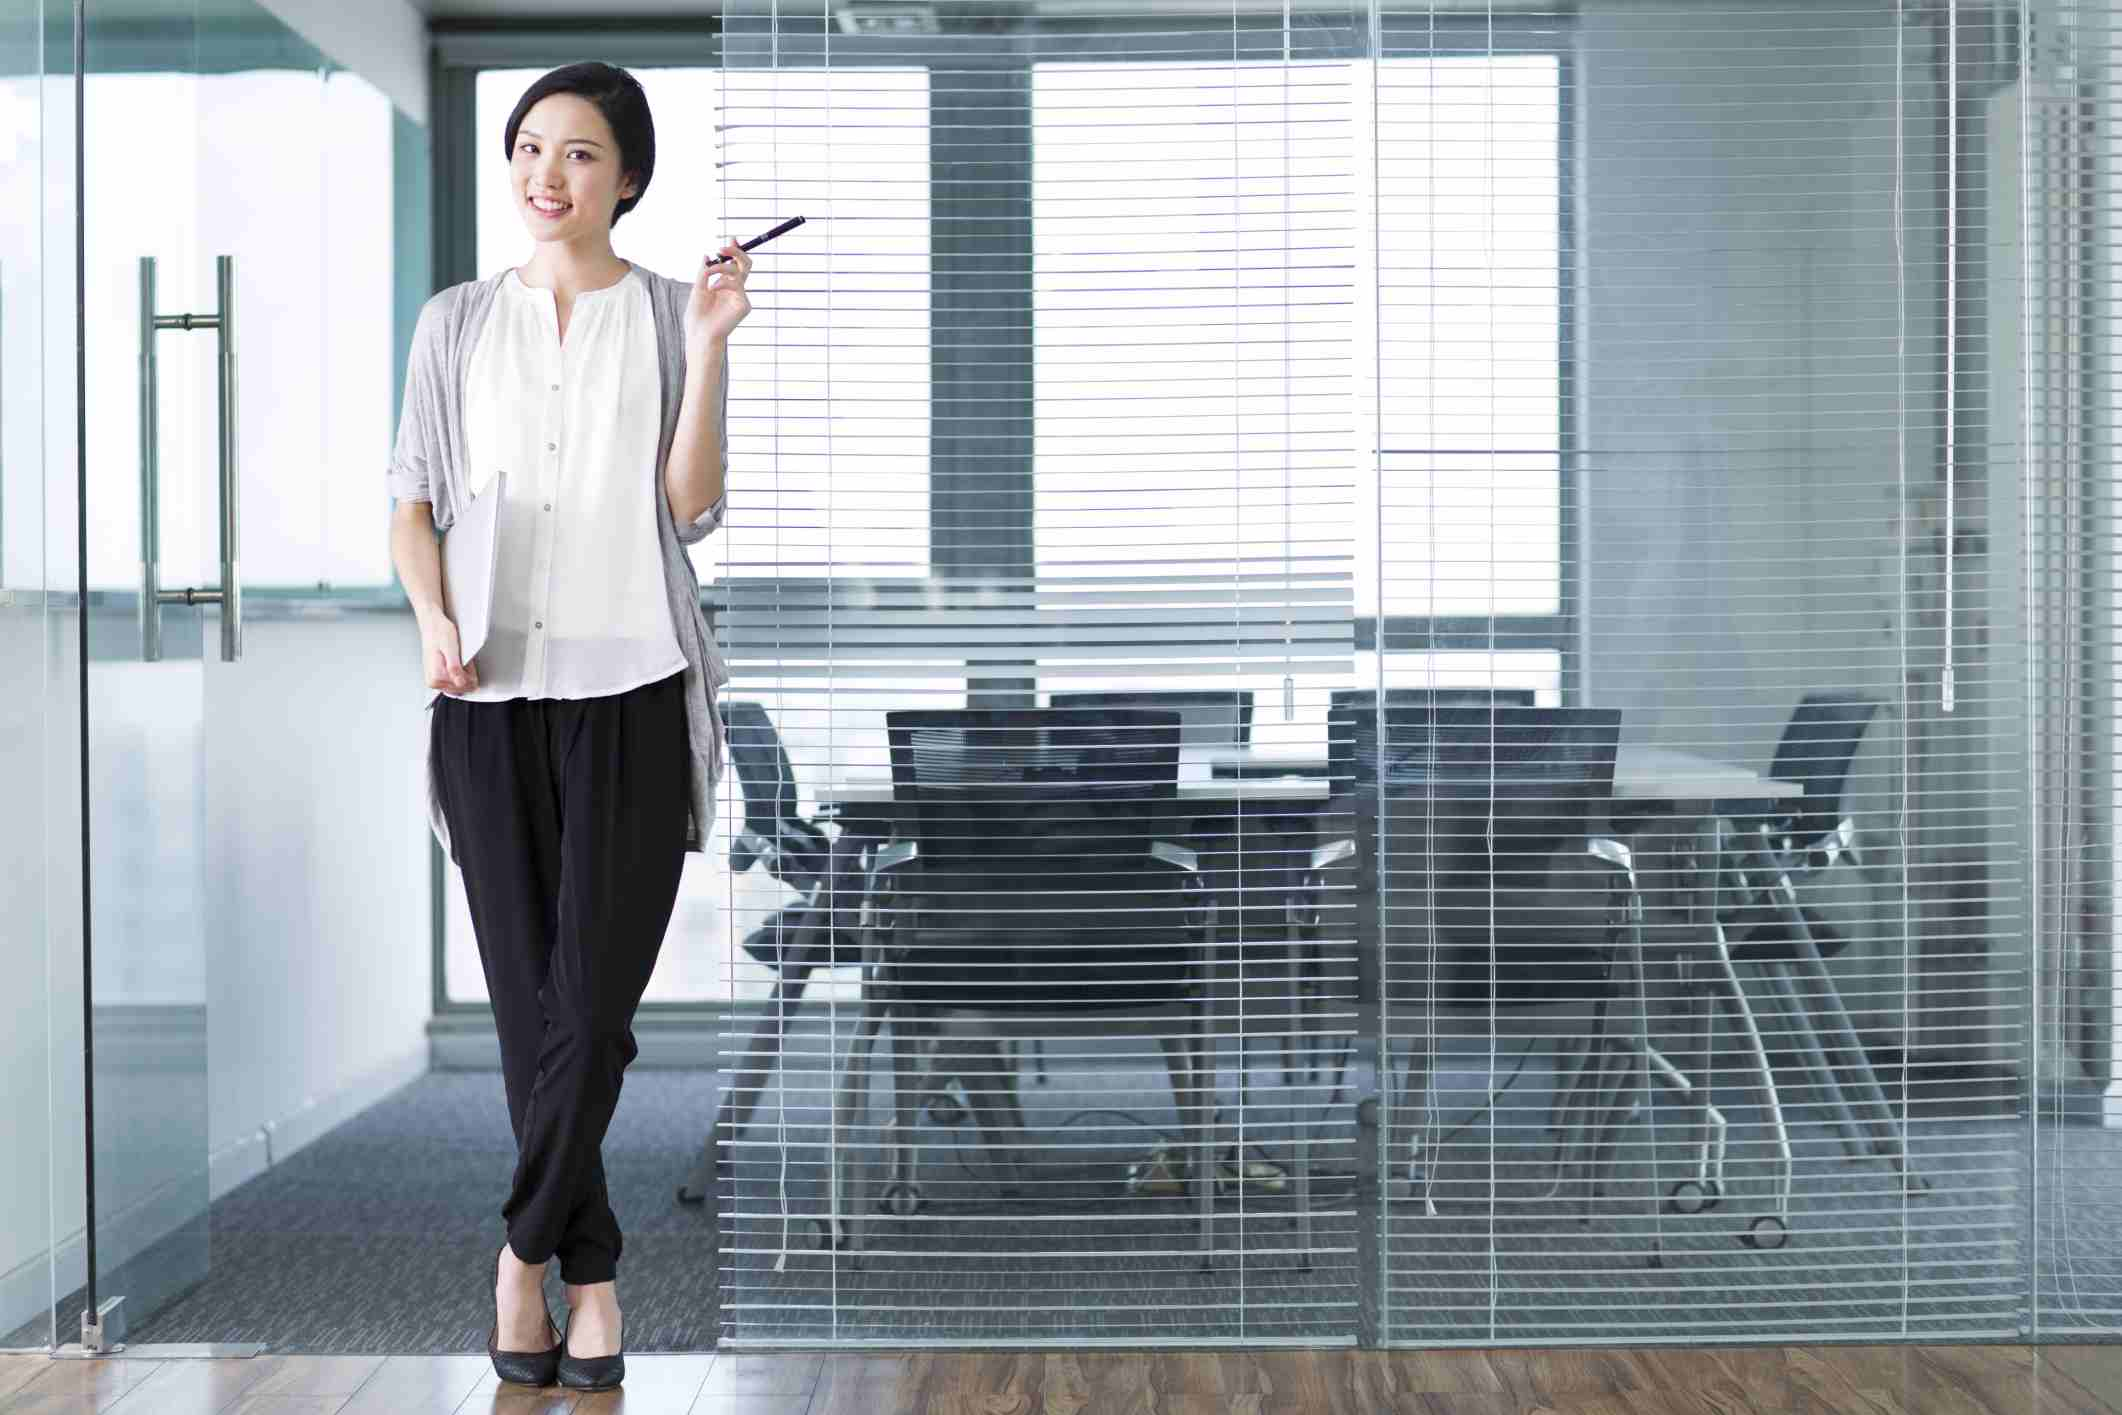 Images of Business Casual Dress for the Workplace 404efd220d